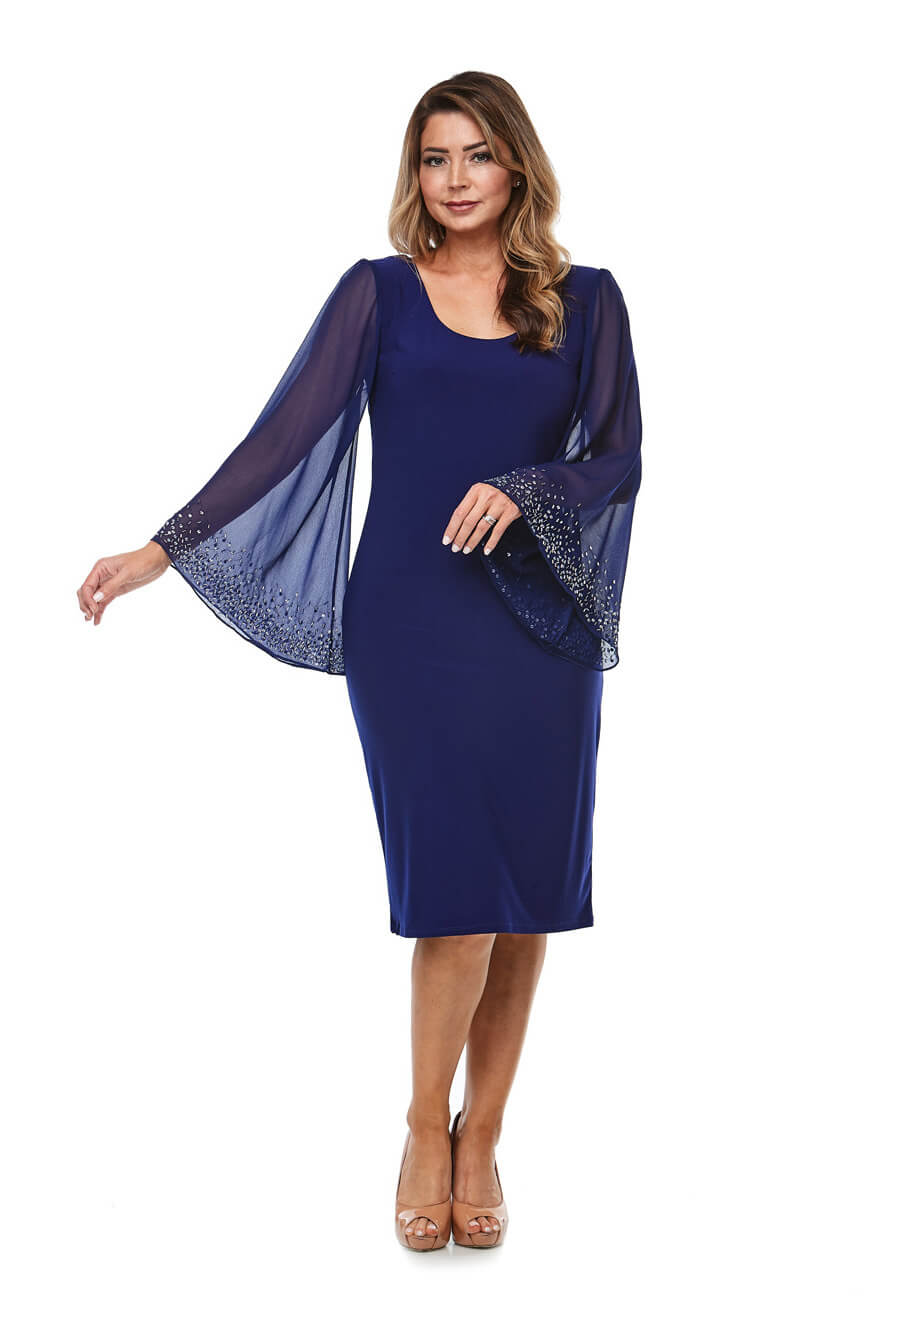 Stretch jersey dress with long angel sleeves & beaded cuff detail